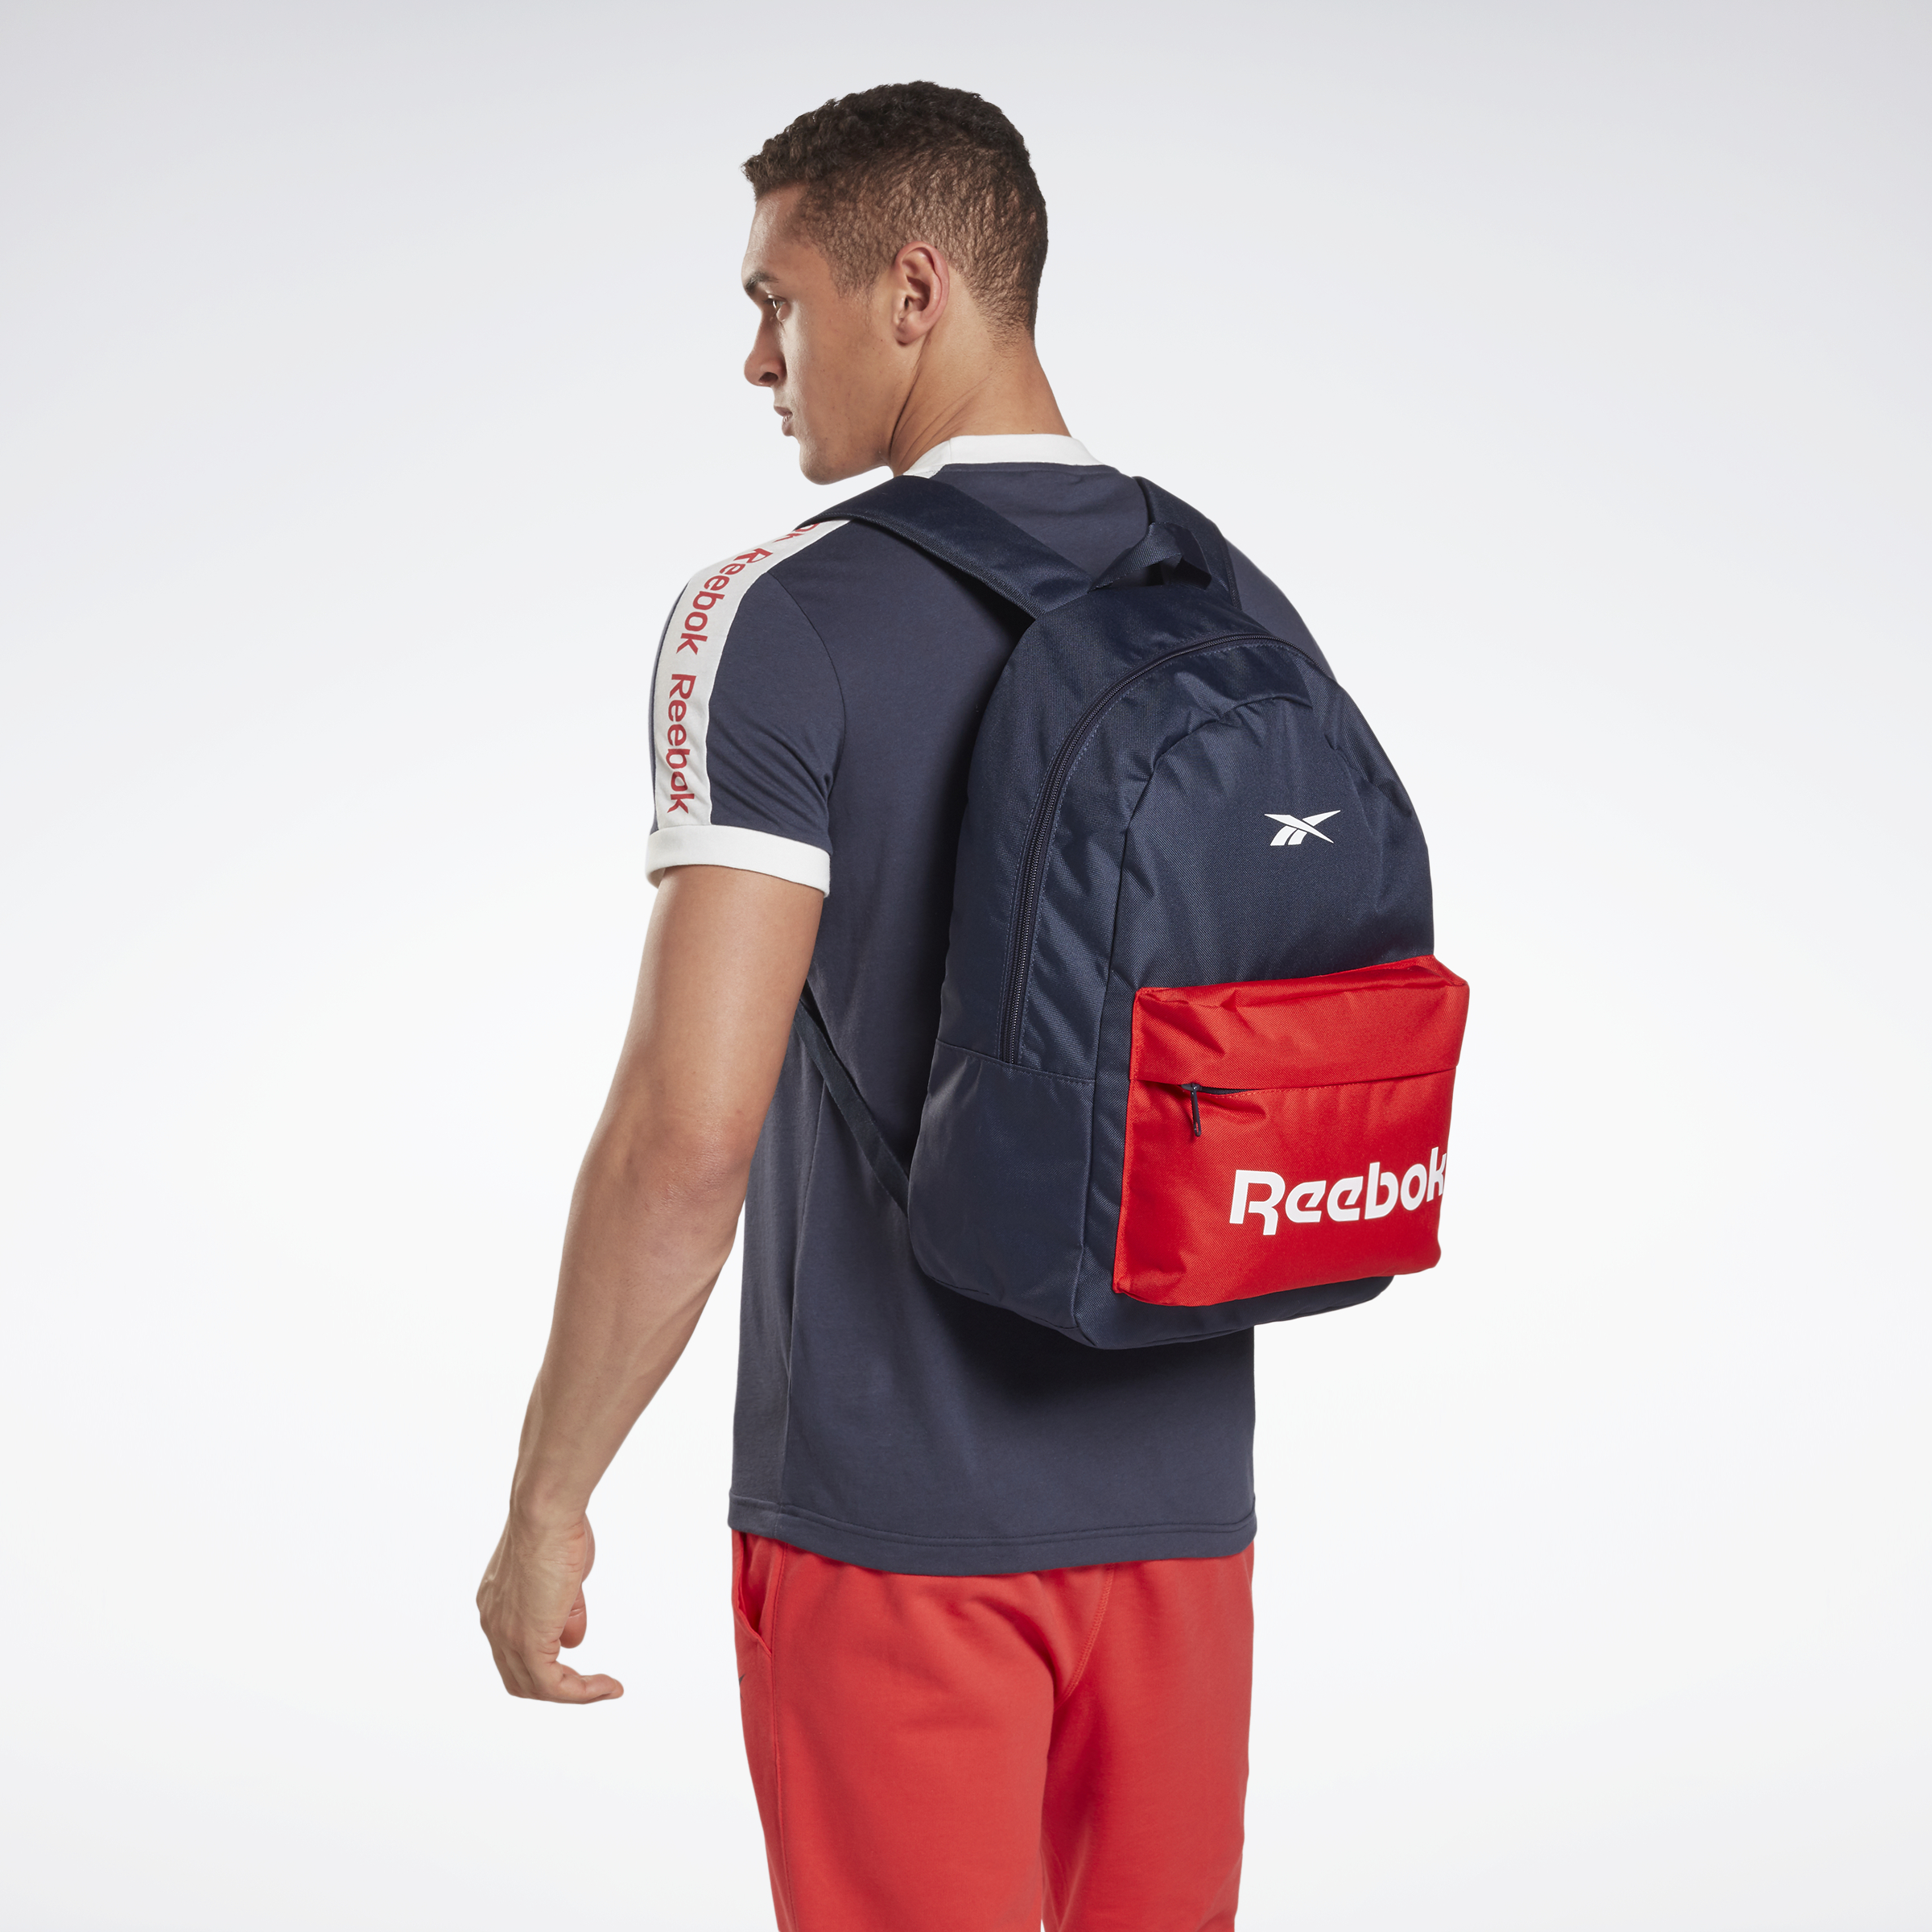 Indexbild 9 - Reebok Sport Active Core Backpack Small Herren, Damen Taschen Rucksäcke